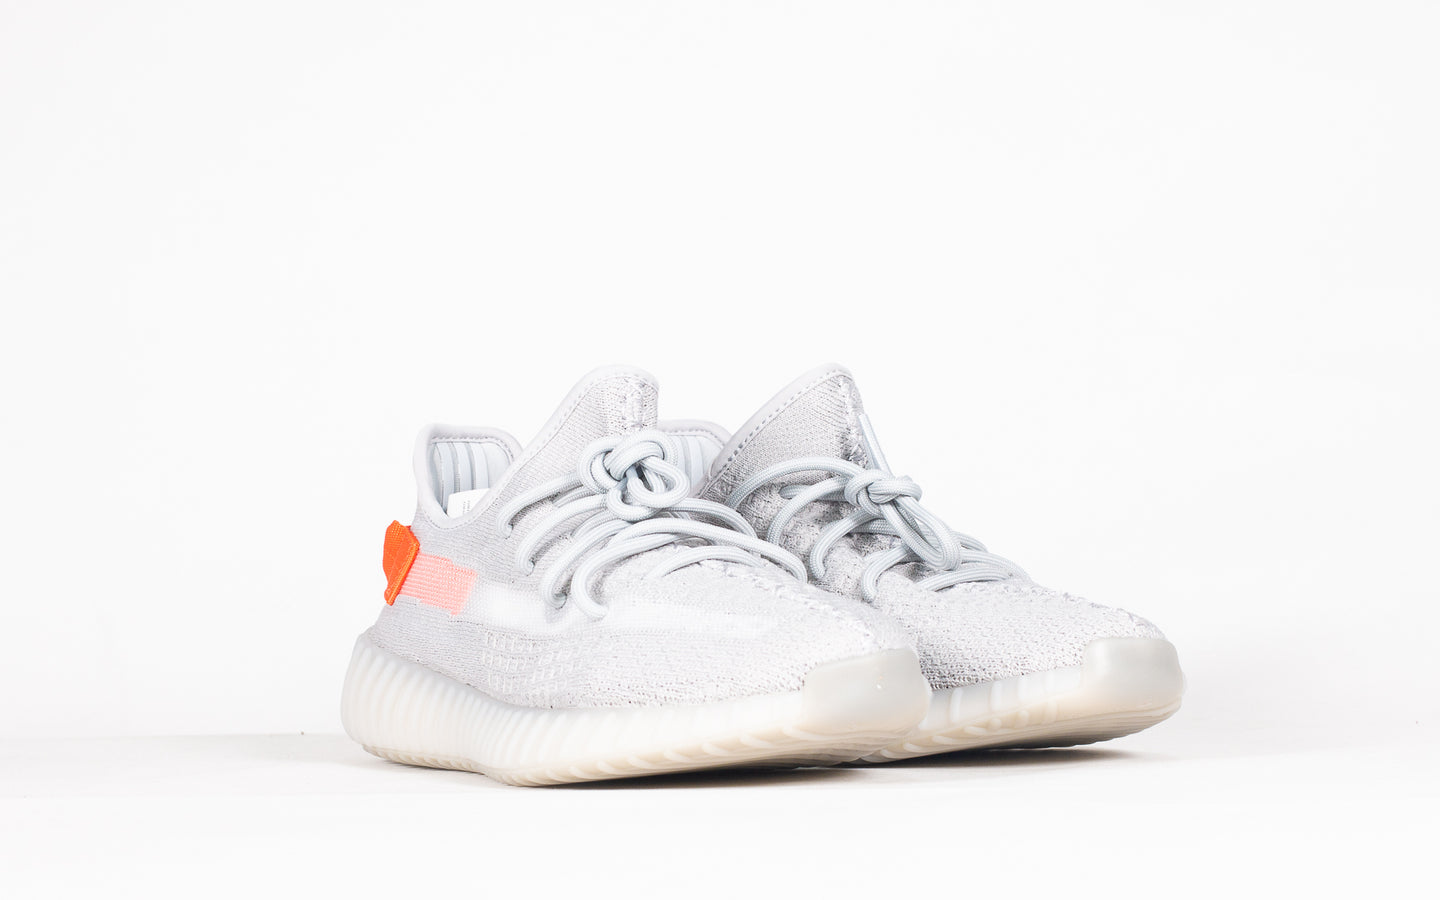 Yeezy Boost 350 V2 'Tail Light' (New)